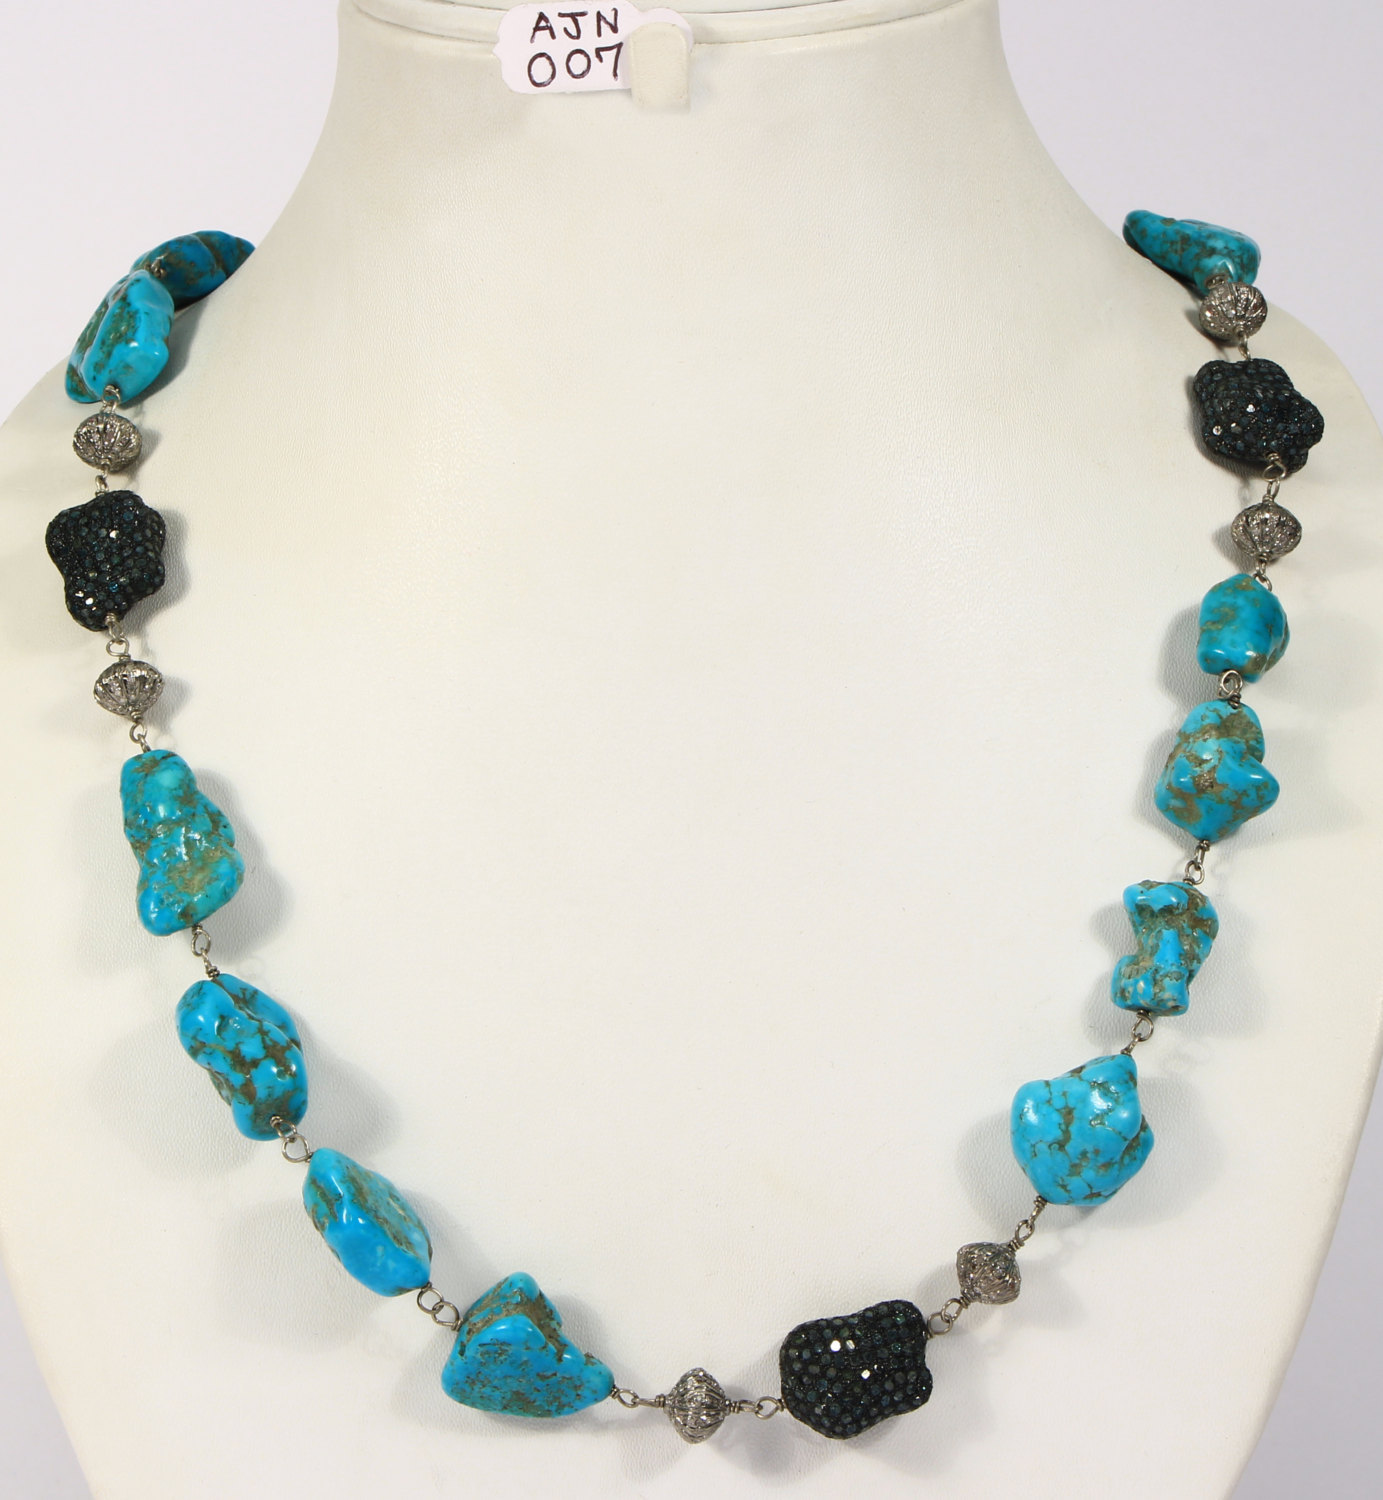 Handmade Women Organic Necklace .925 Sterling Silver with Turquoise & Diamonds